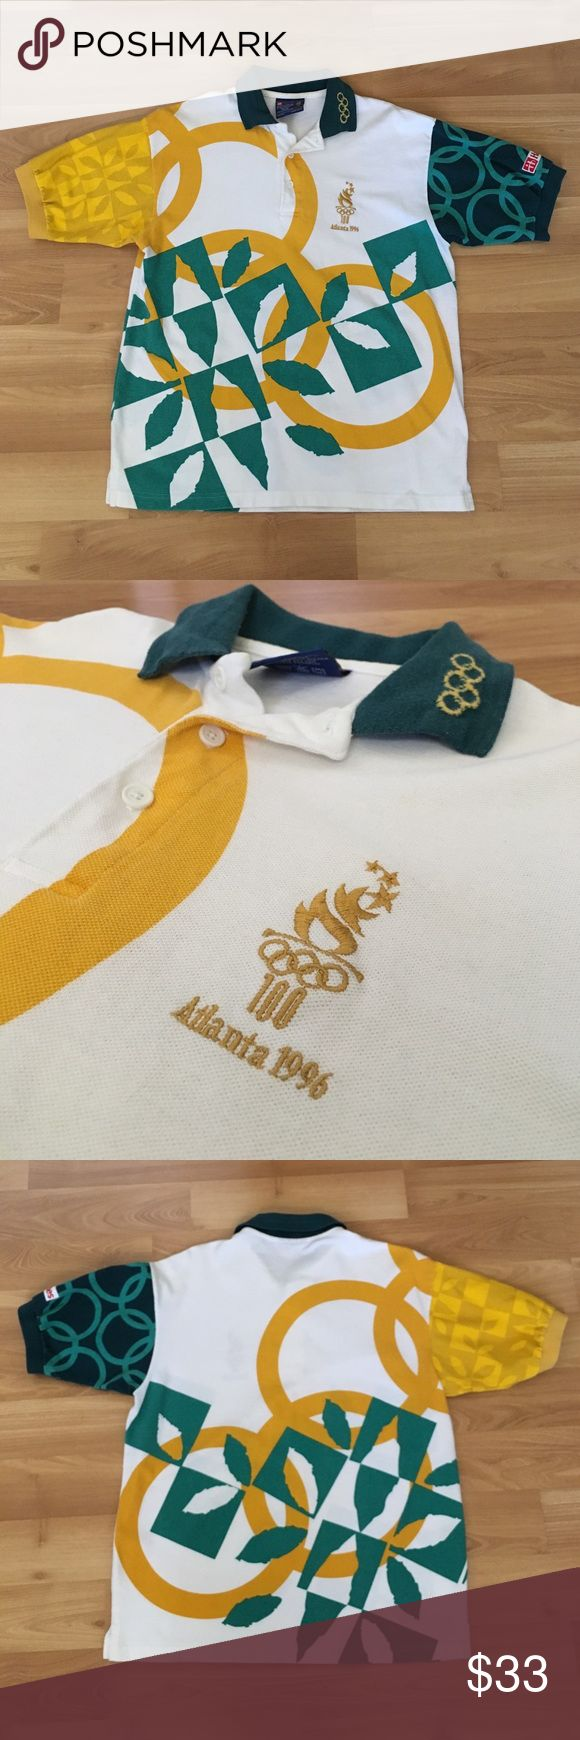 Vintage Atlanta Olympics 1996 Hanes Polo Sz Medium Vintage 1996 Atlanta olympics size medium polo. This is a highly rare, vintage hanes polo from the 1996 olympics. Great fitting polo with stitched logos and the olympics logo on the collar. Hanes Shirts Polos